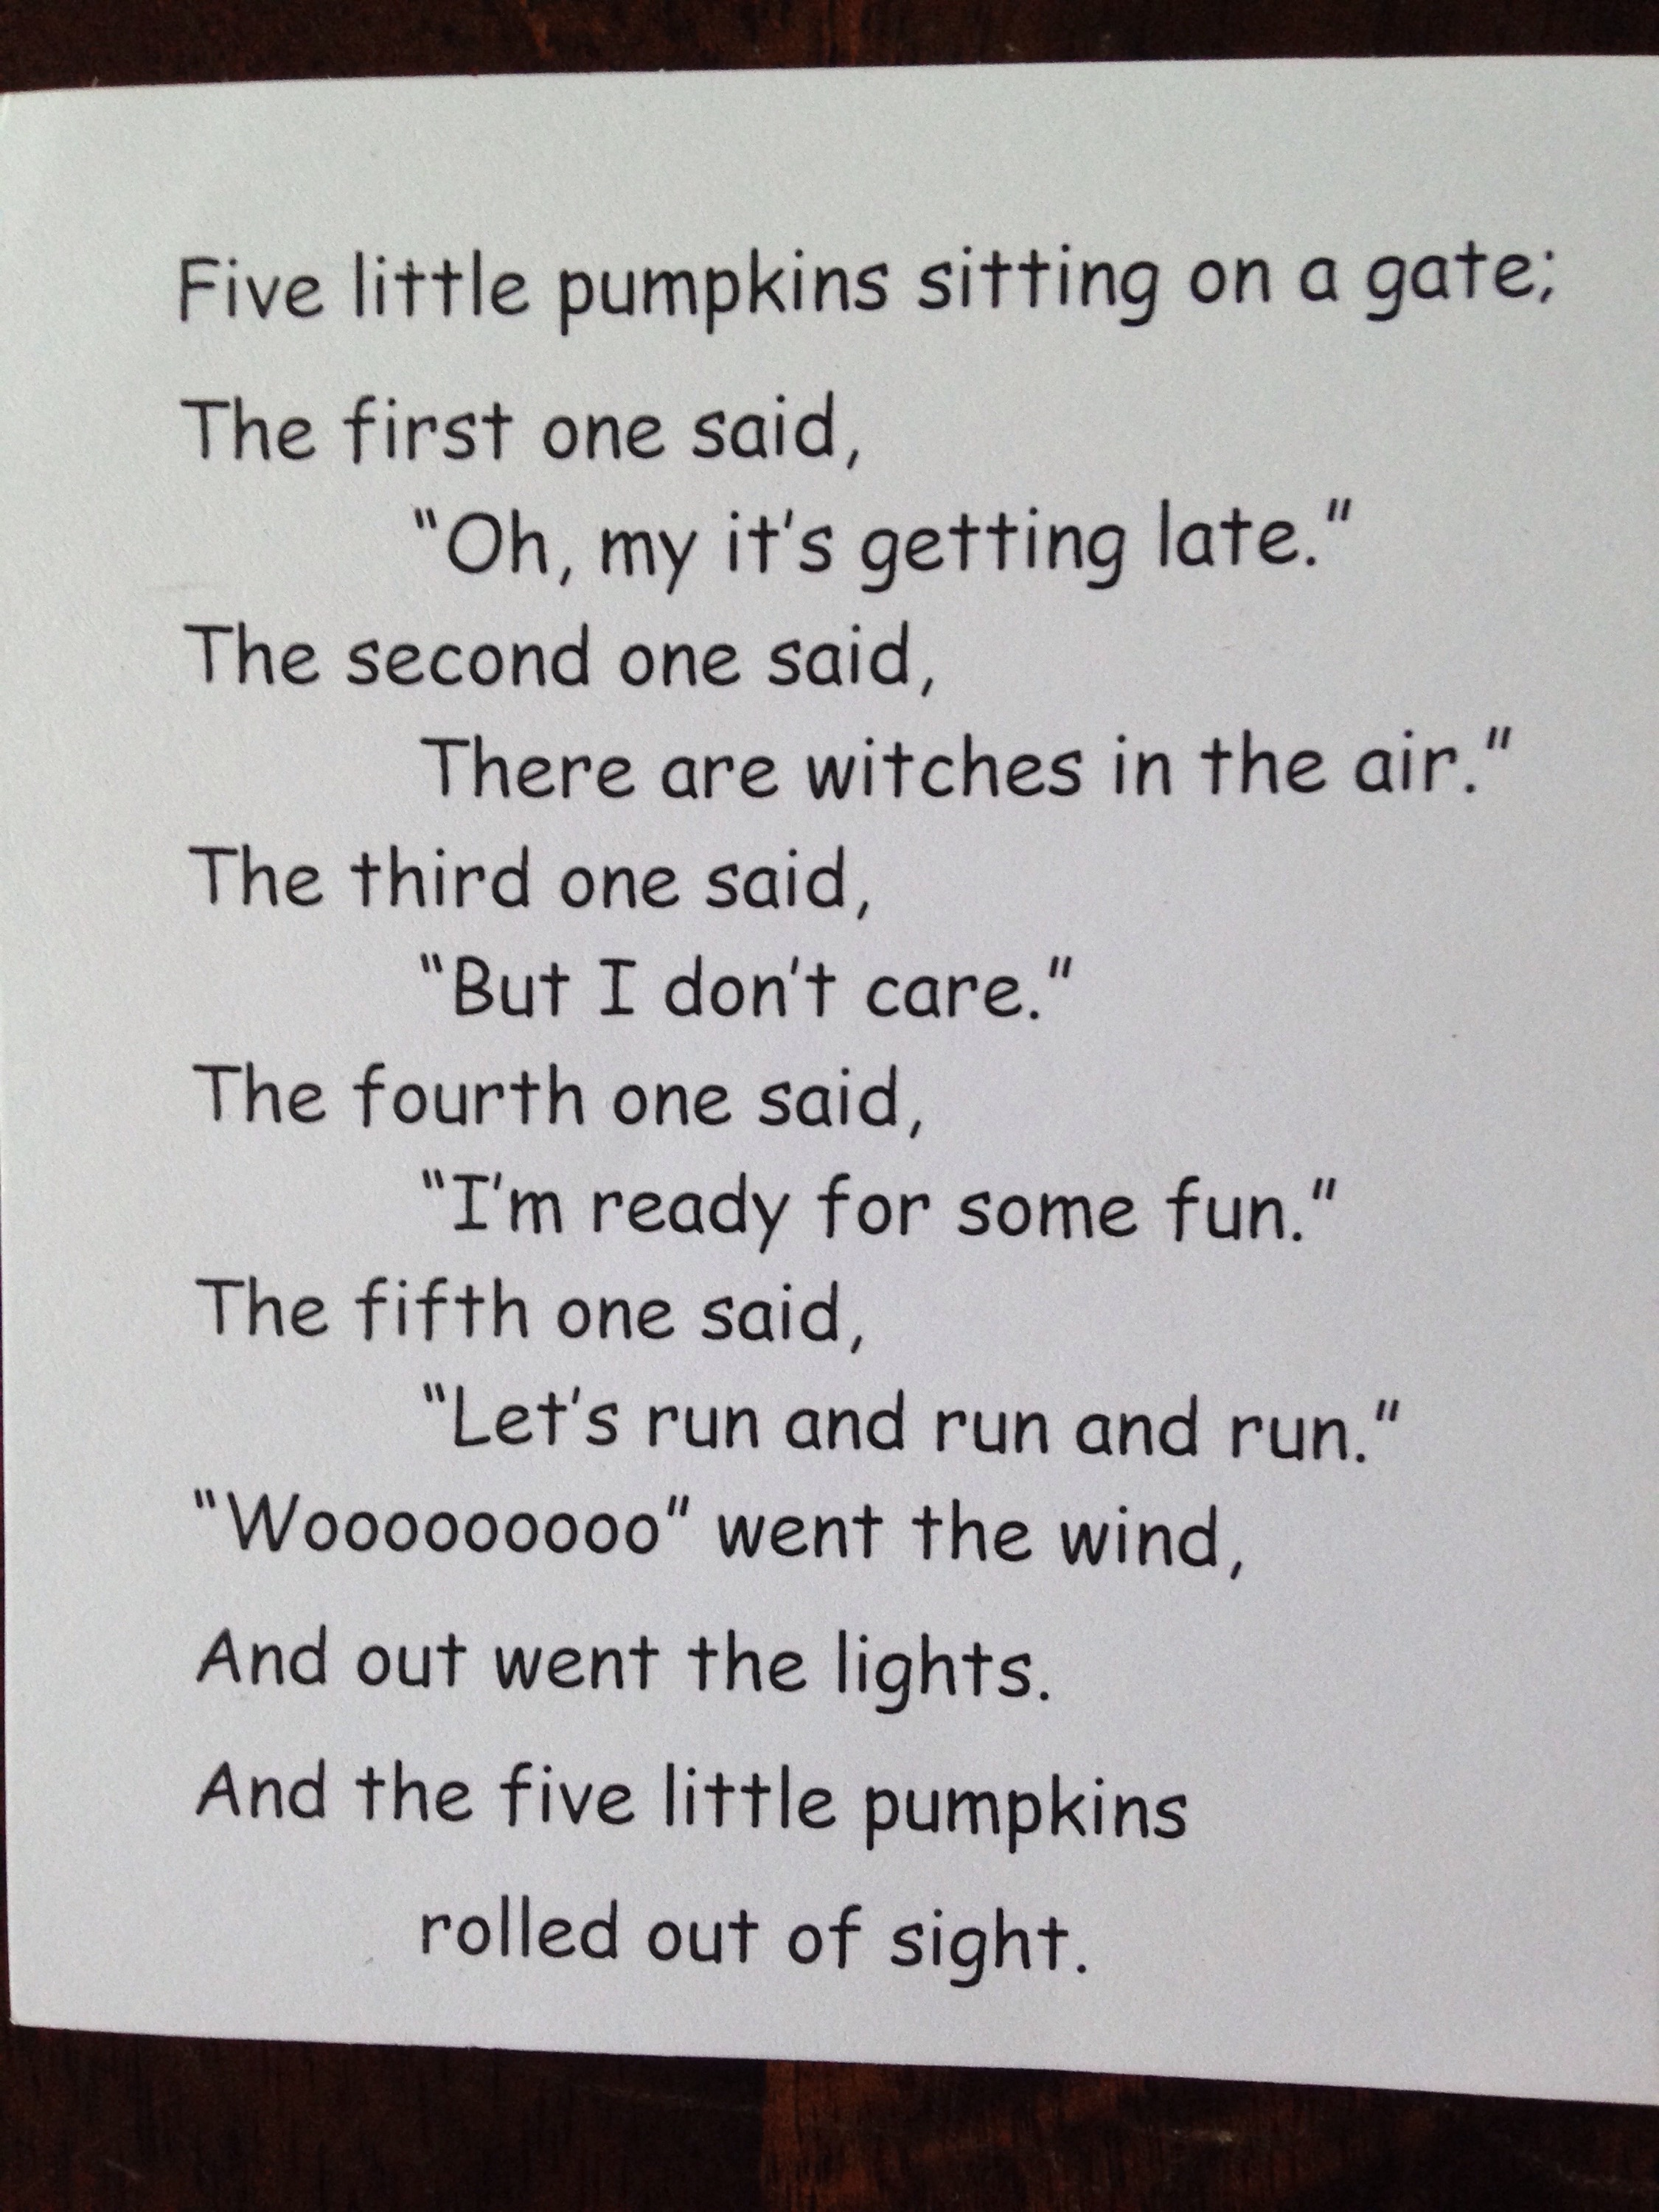 photo about Five Little Pumpkins Poem Printable named 5 Minor Pumpkins Poem and Crafts - Cly Mommy